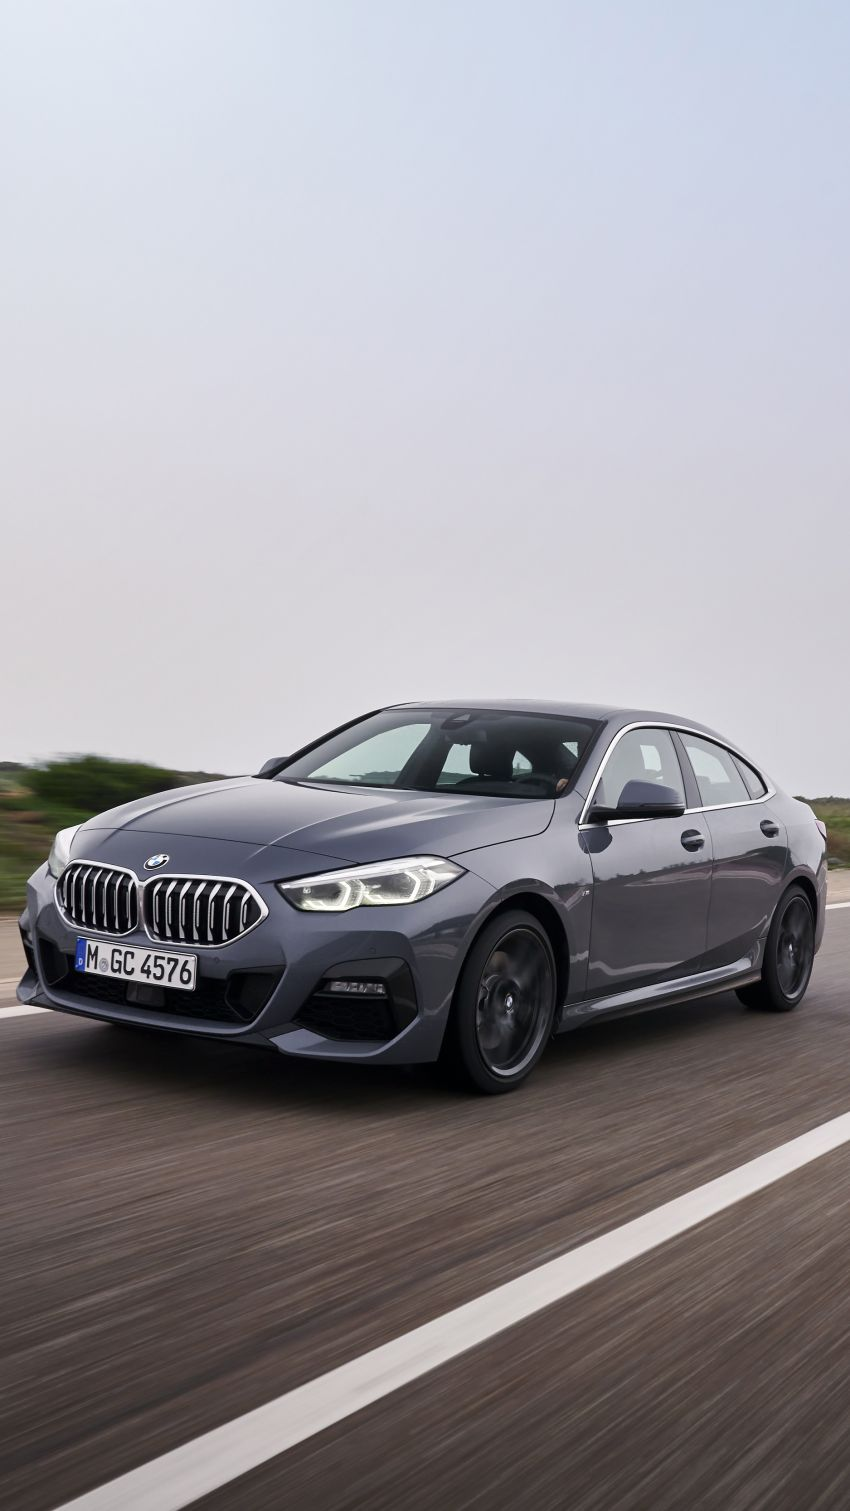 GALLERY: F44 BMW 2 Series Gran Coupé in Lisbon Image #1089033